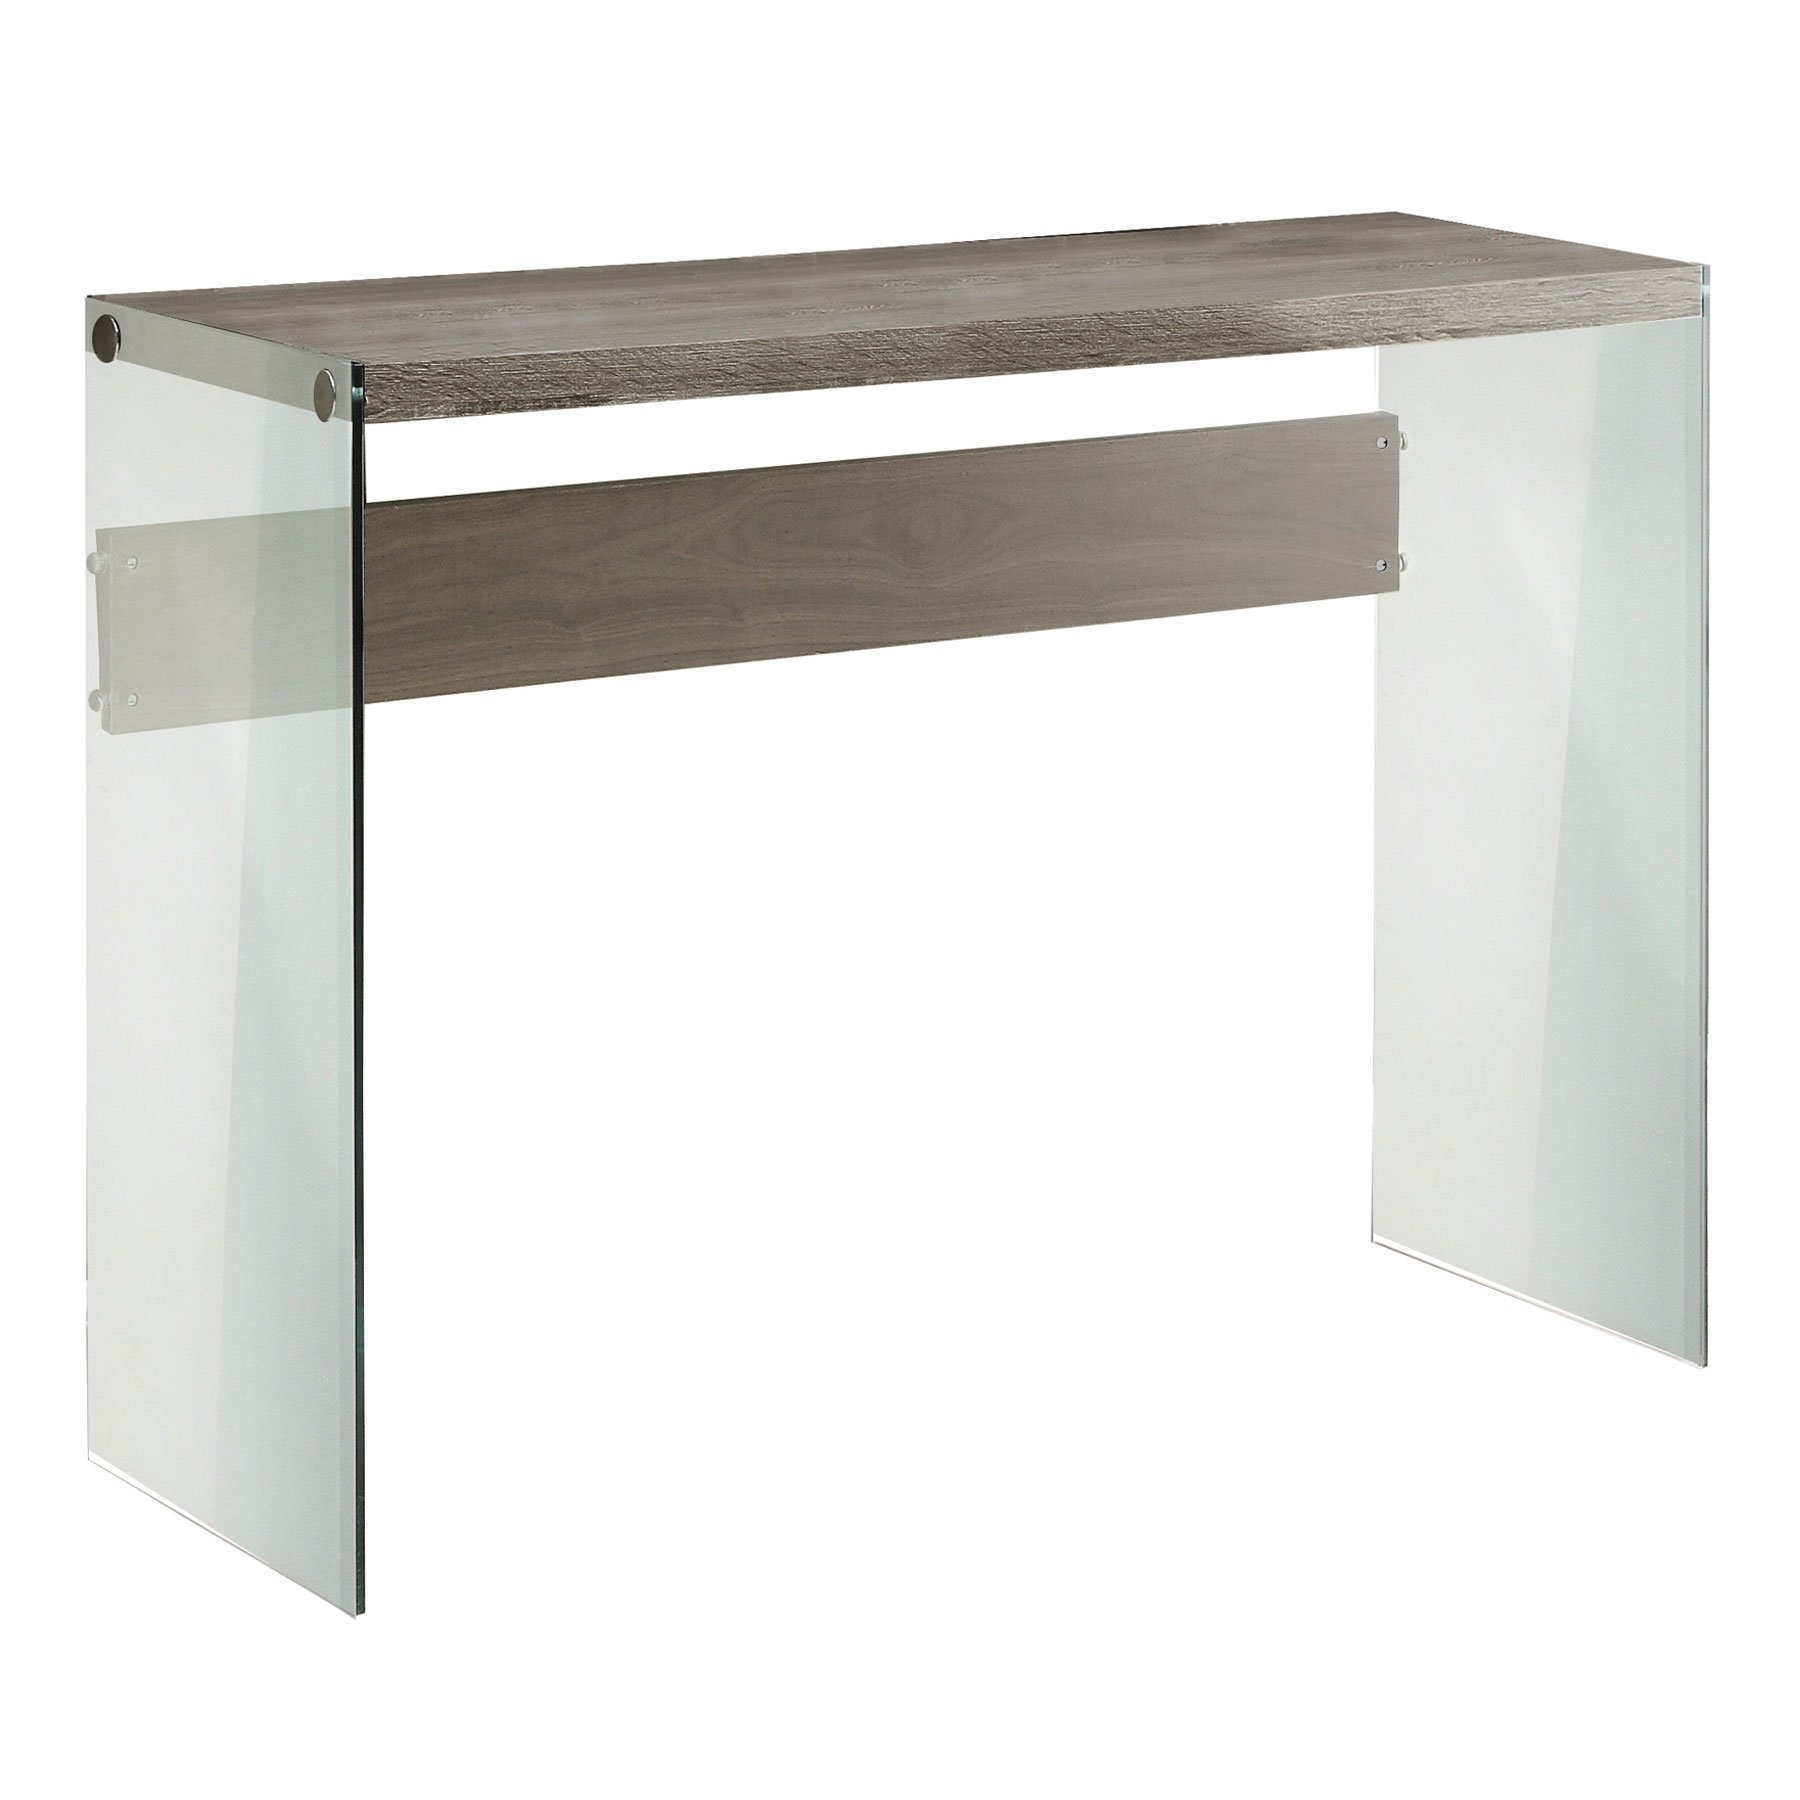 Monarch specialties I 3055, Console Sofa Table, Tempered Glass, Dark Taupe, 44''L